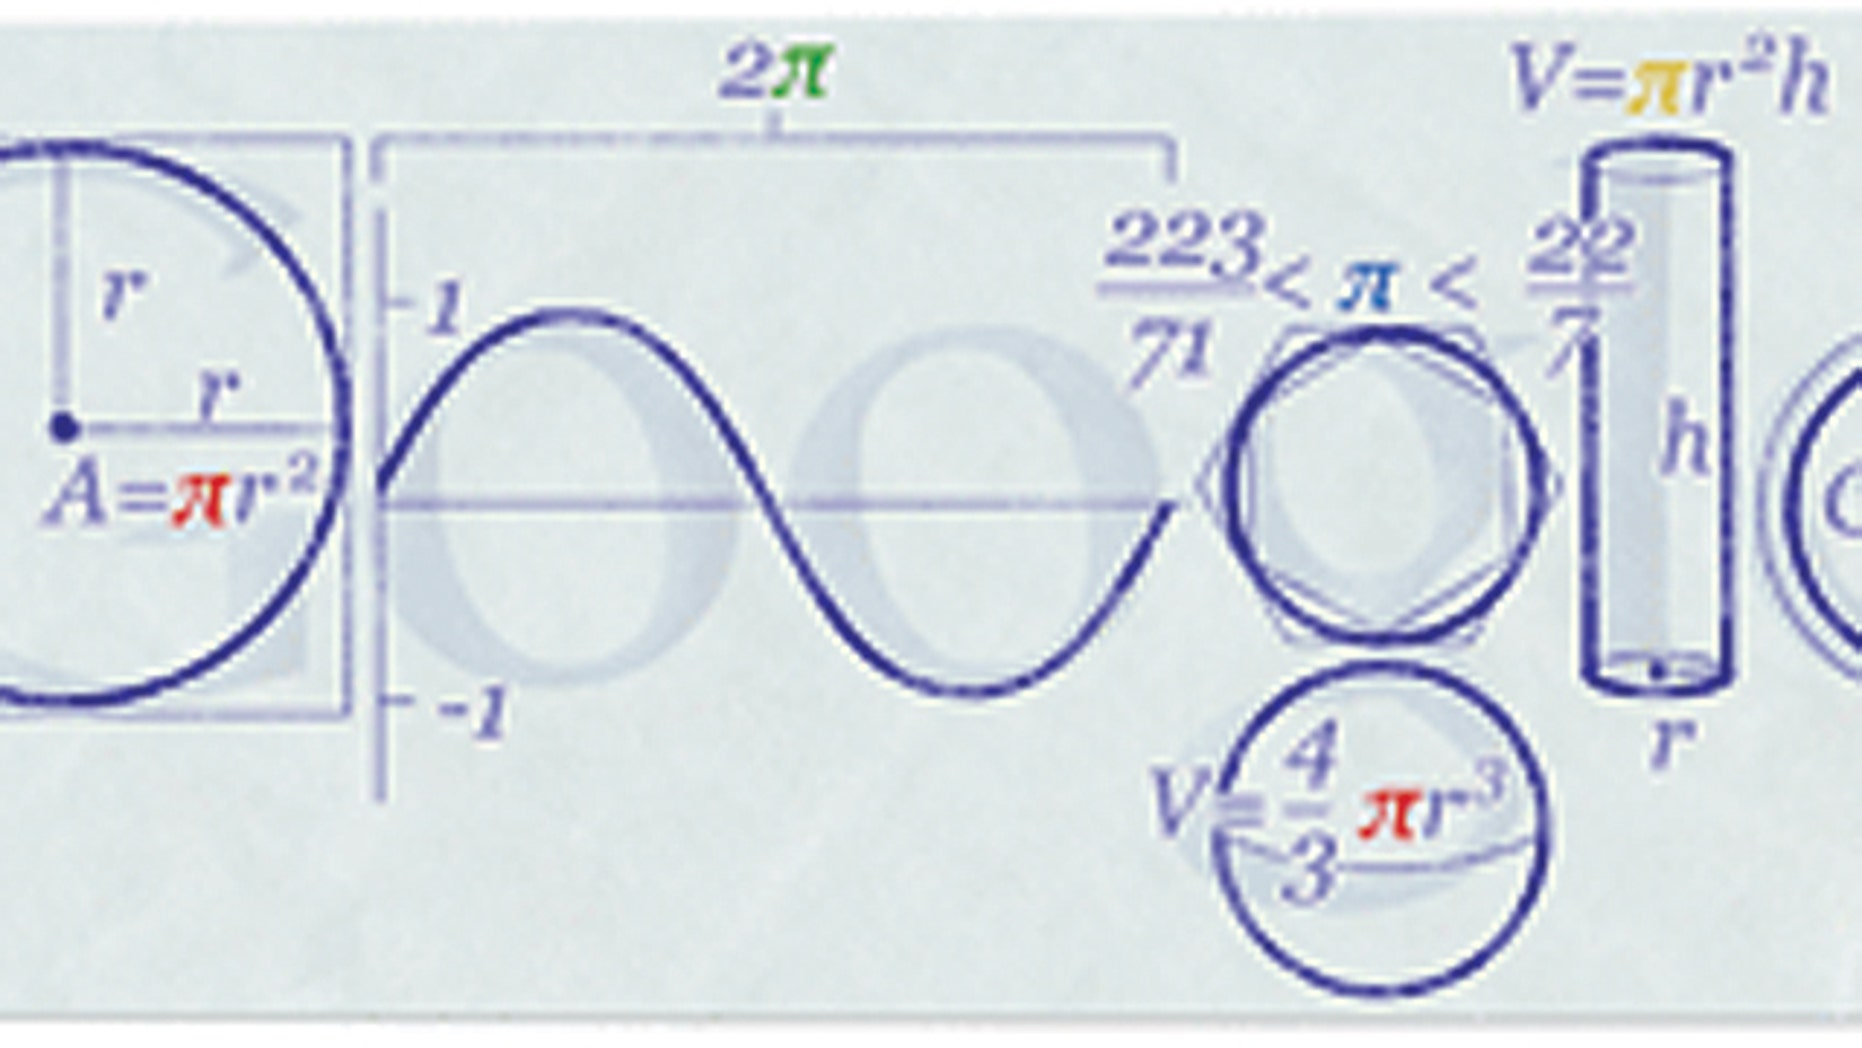 """Google celebrated March 15th (or """"Pi Day"""" as many call it) with this doodle. But sadly, the company has not honored Tau Day in the same way."""